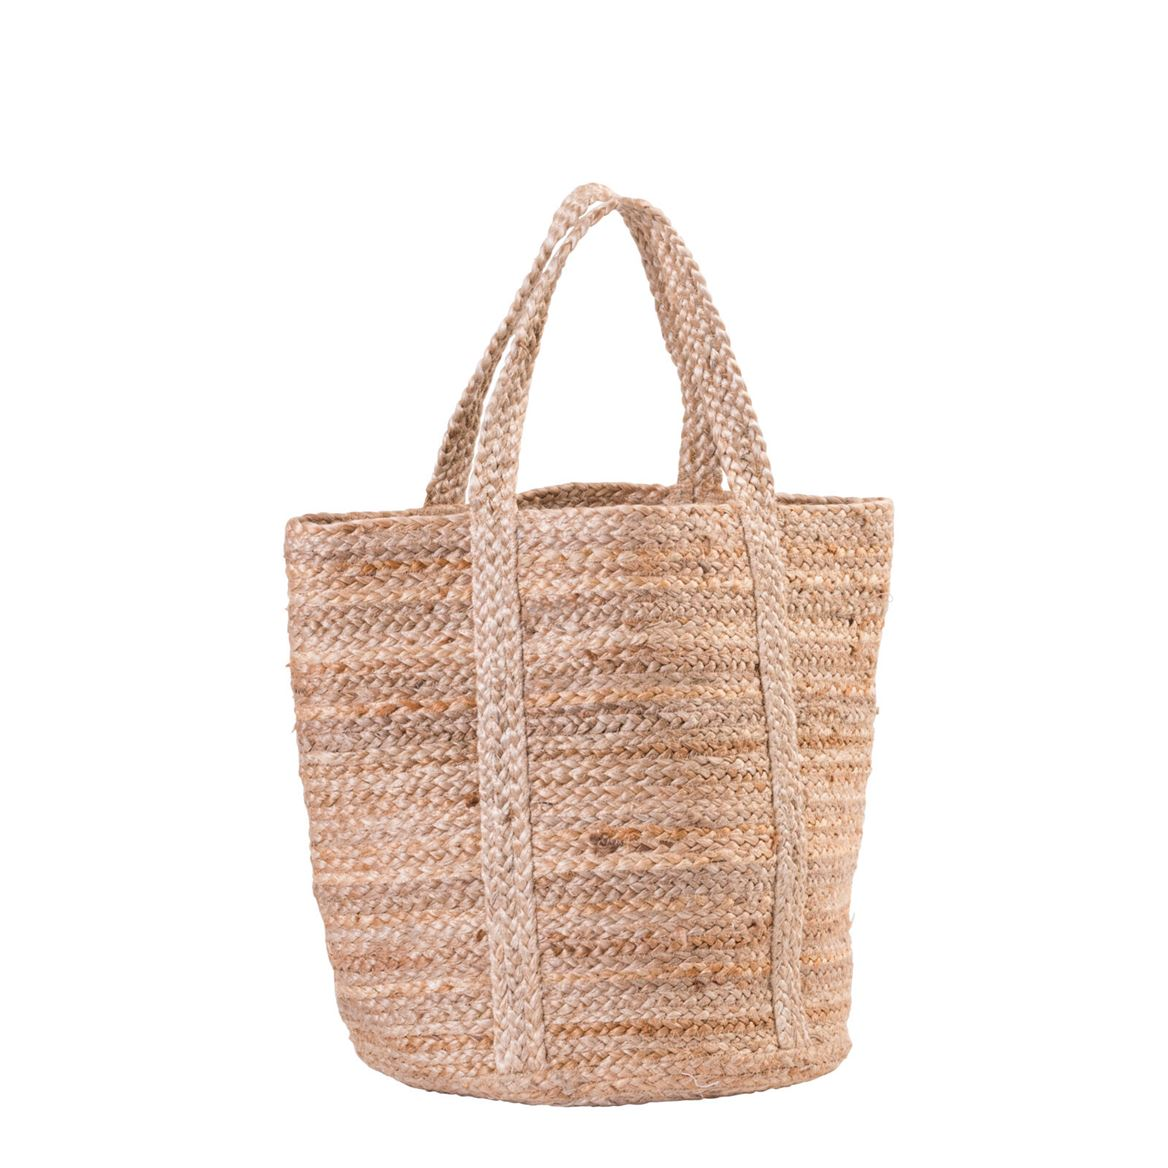 BRAID Bolsa natural A 52 x An. 40 cm_braid-bolsa-natural-a-52-x-an--40-cm